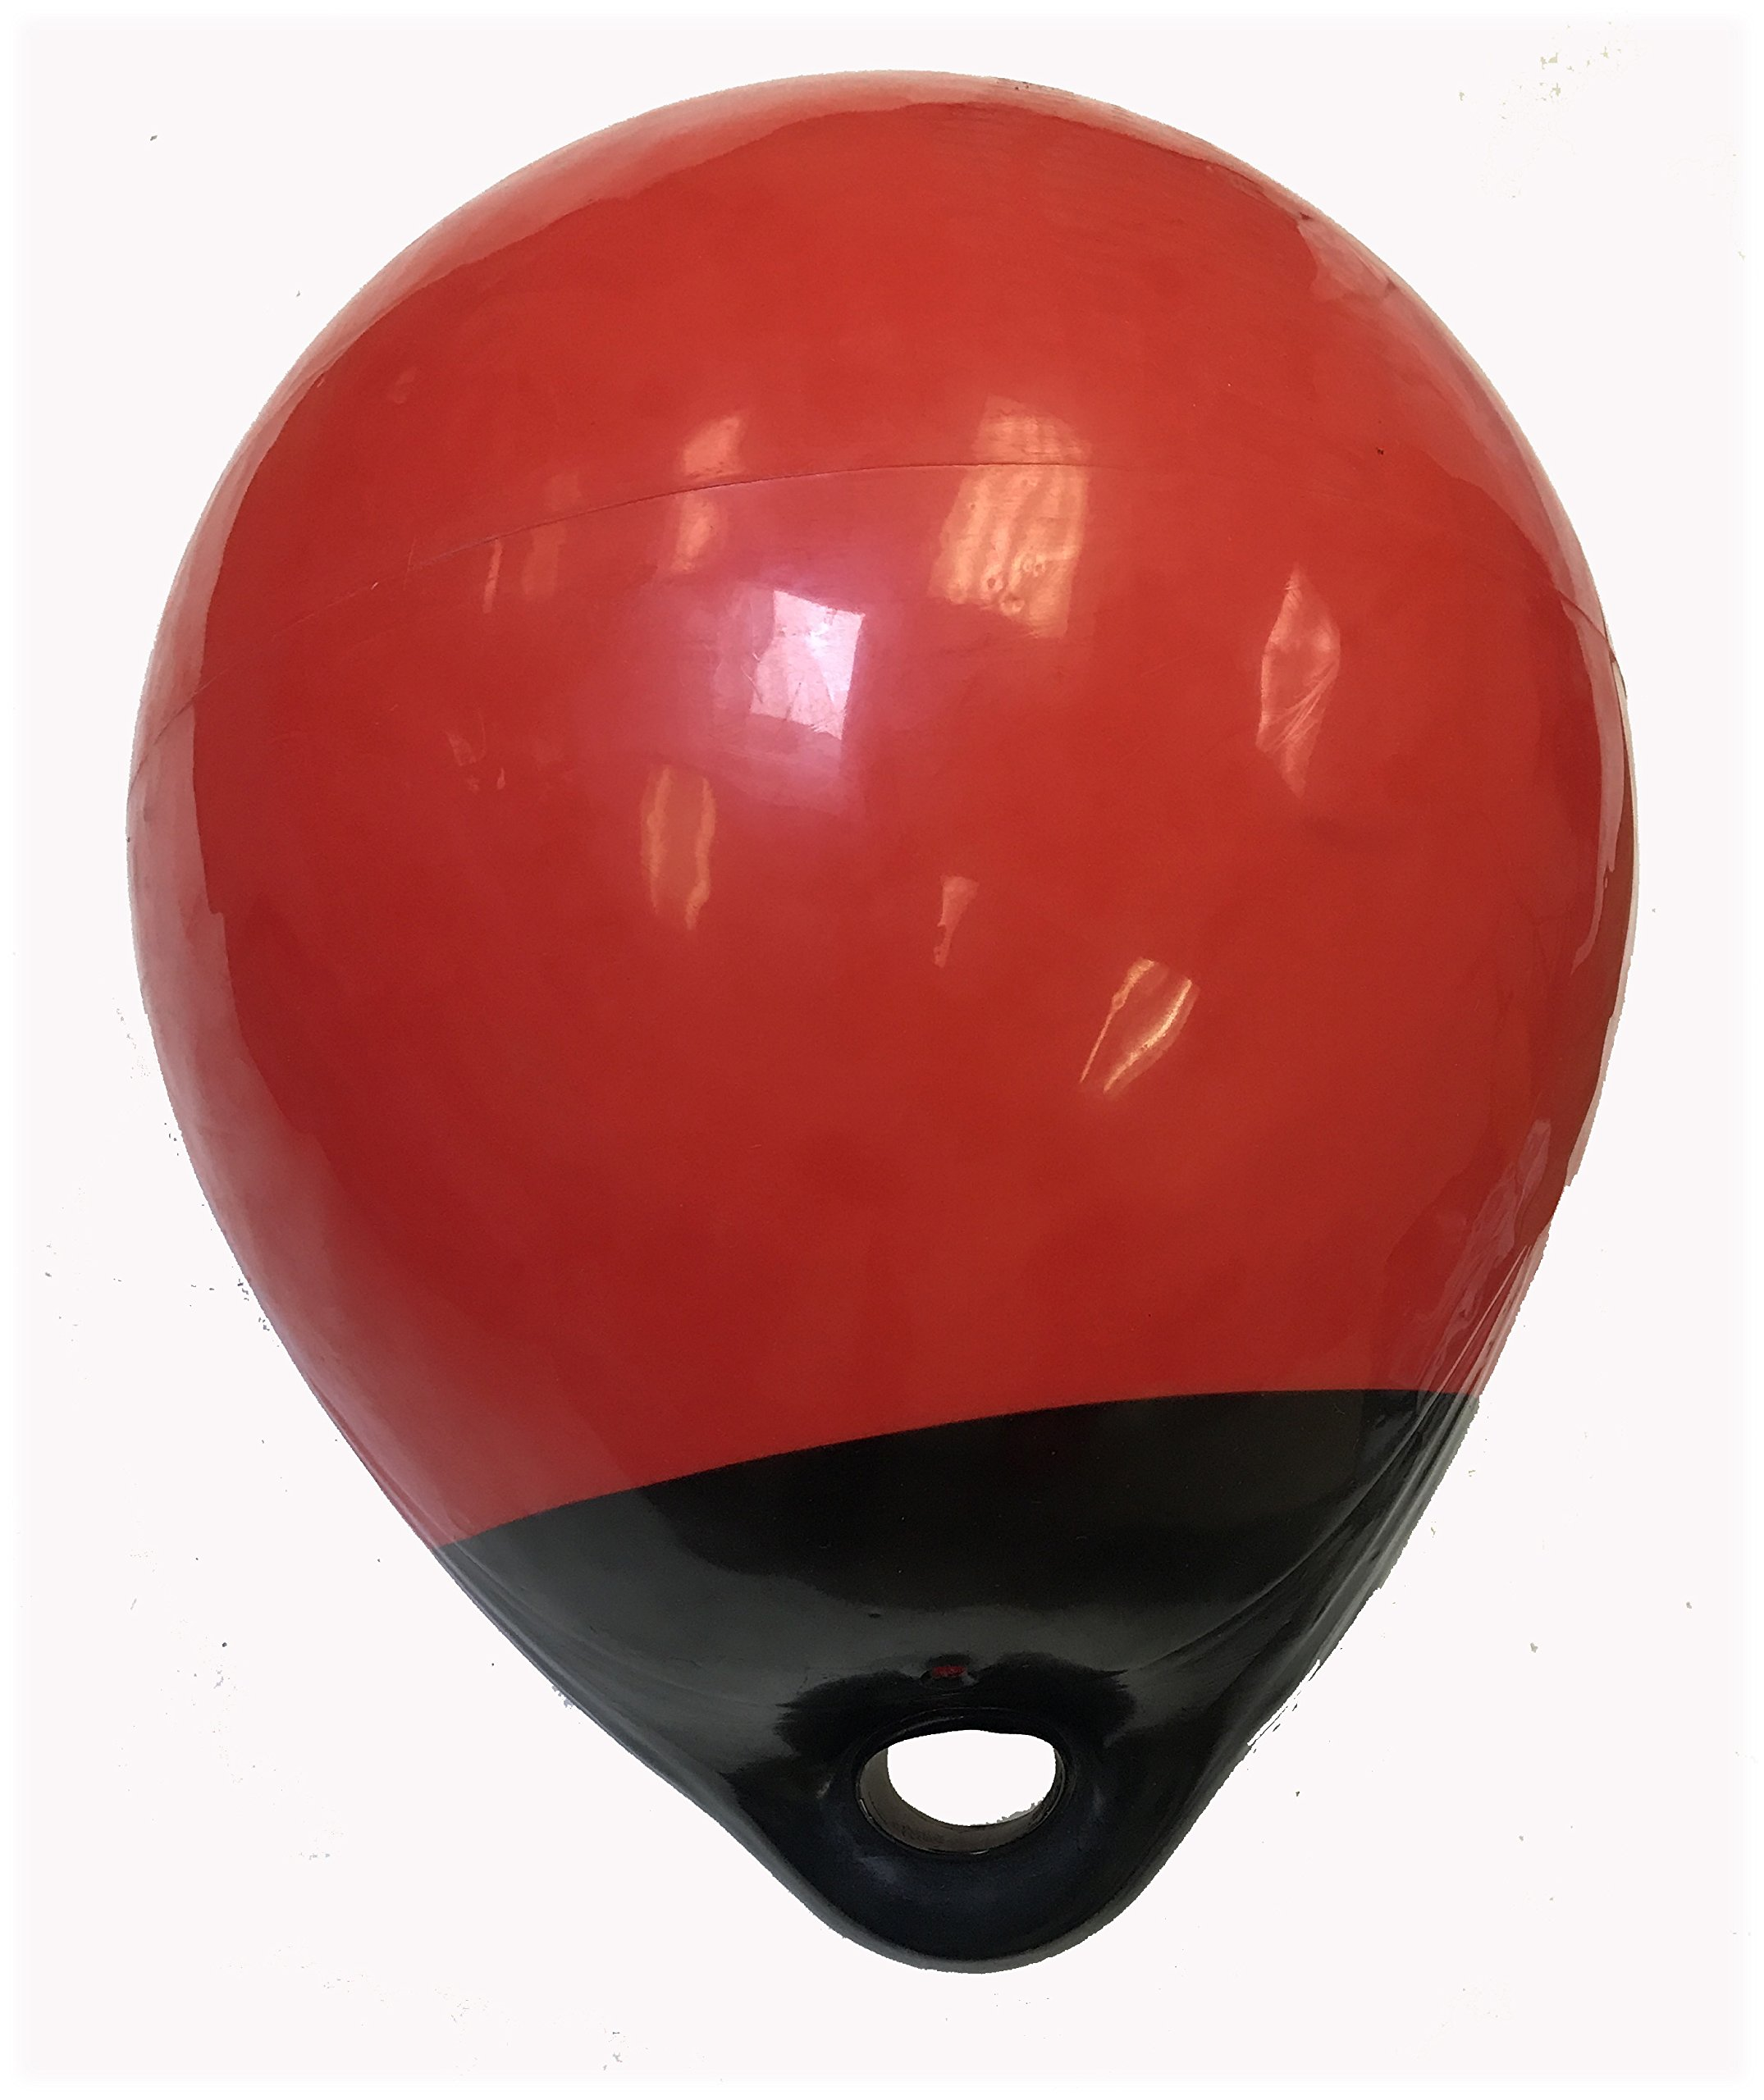 KUFA A38 Red/Black 15'' Diameter (Inflated Size: 15'' x 20'') Mark Buoy Mooring Buoy Anchor Lift Buoy